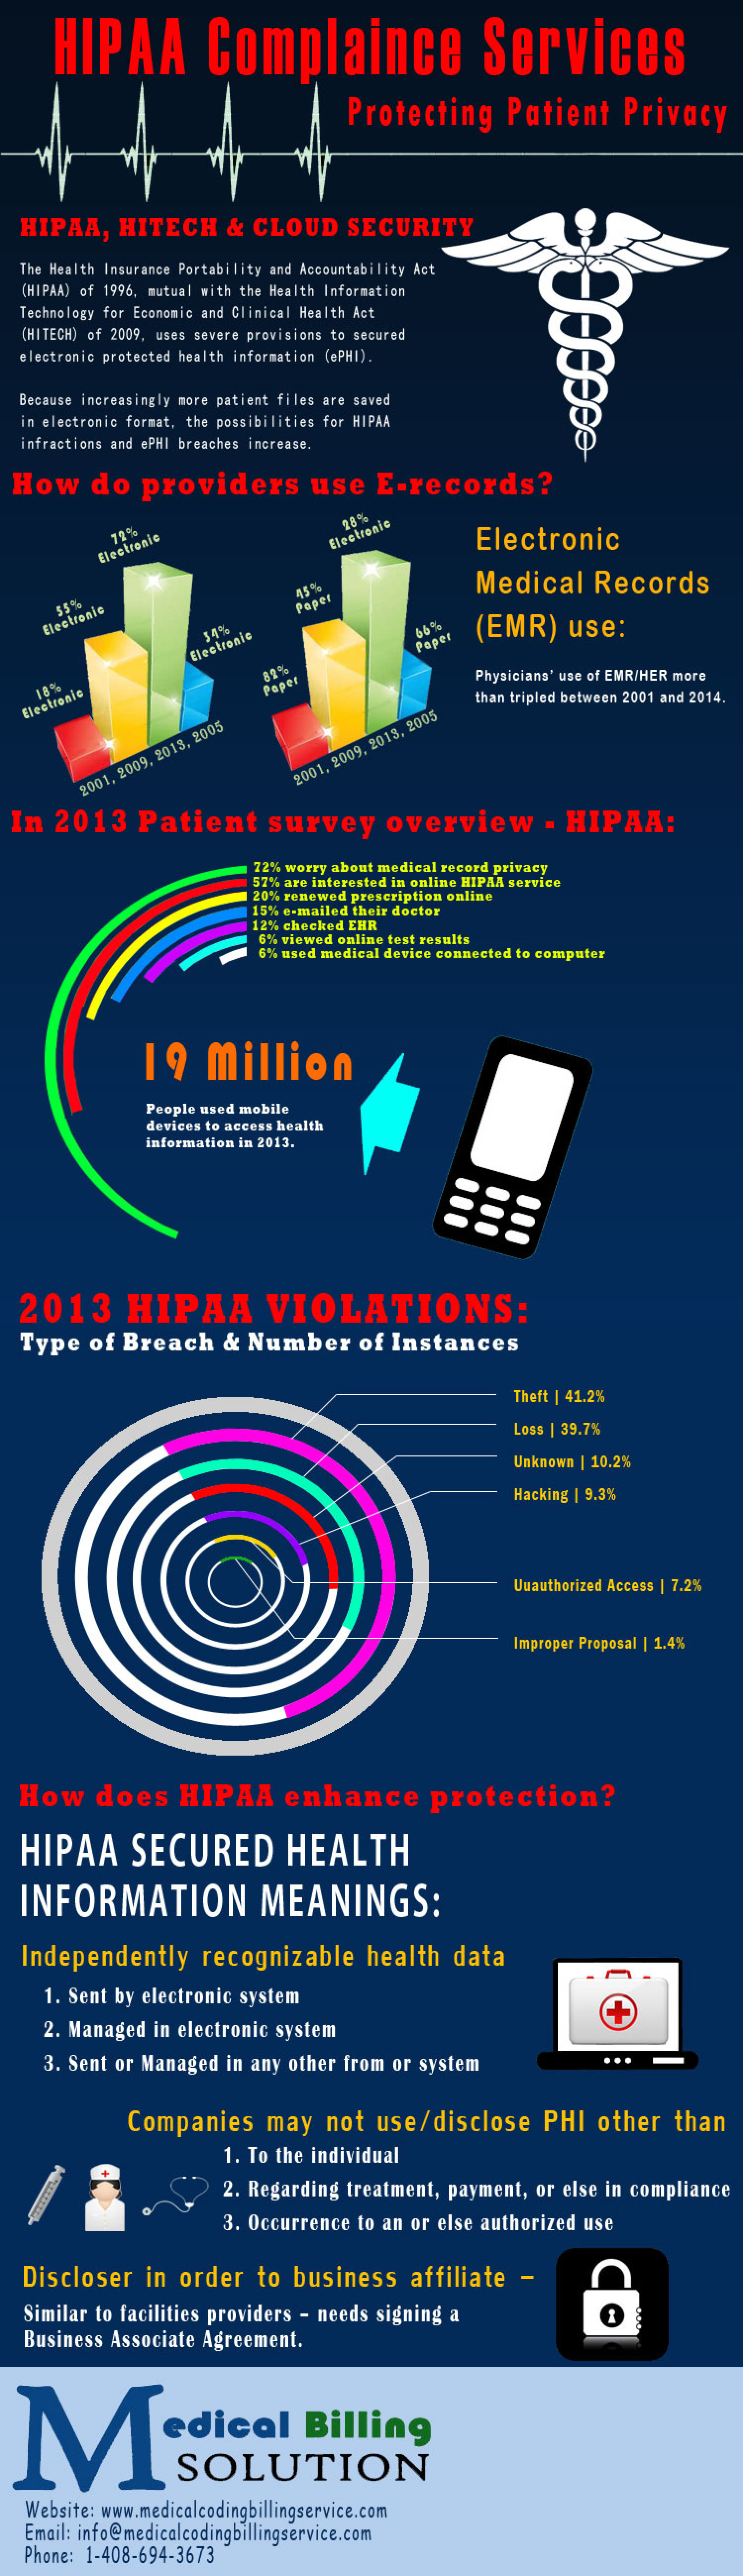 HIPAA Complaince Services - Protecting Patient Privacy Infographic